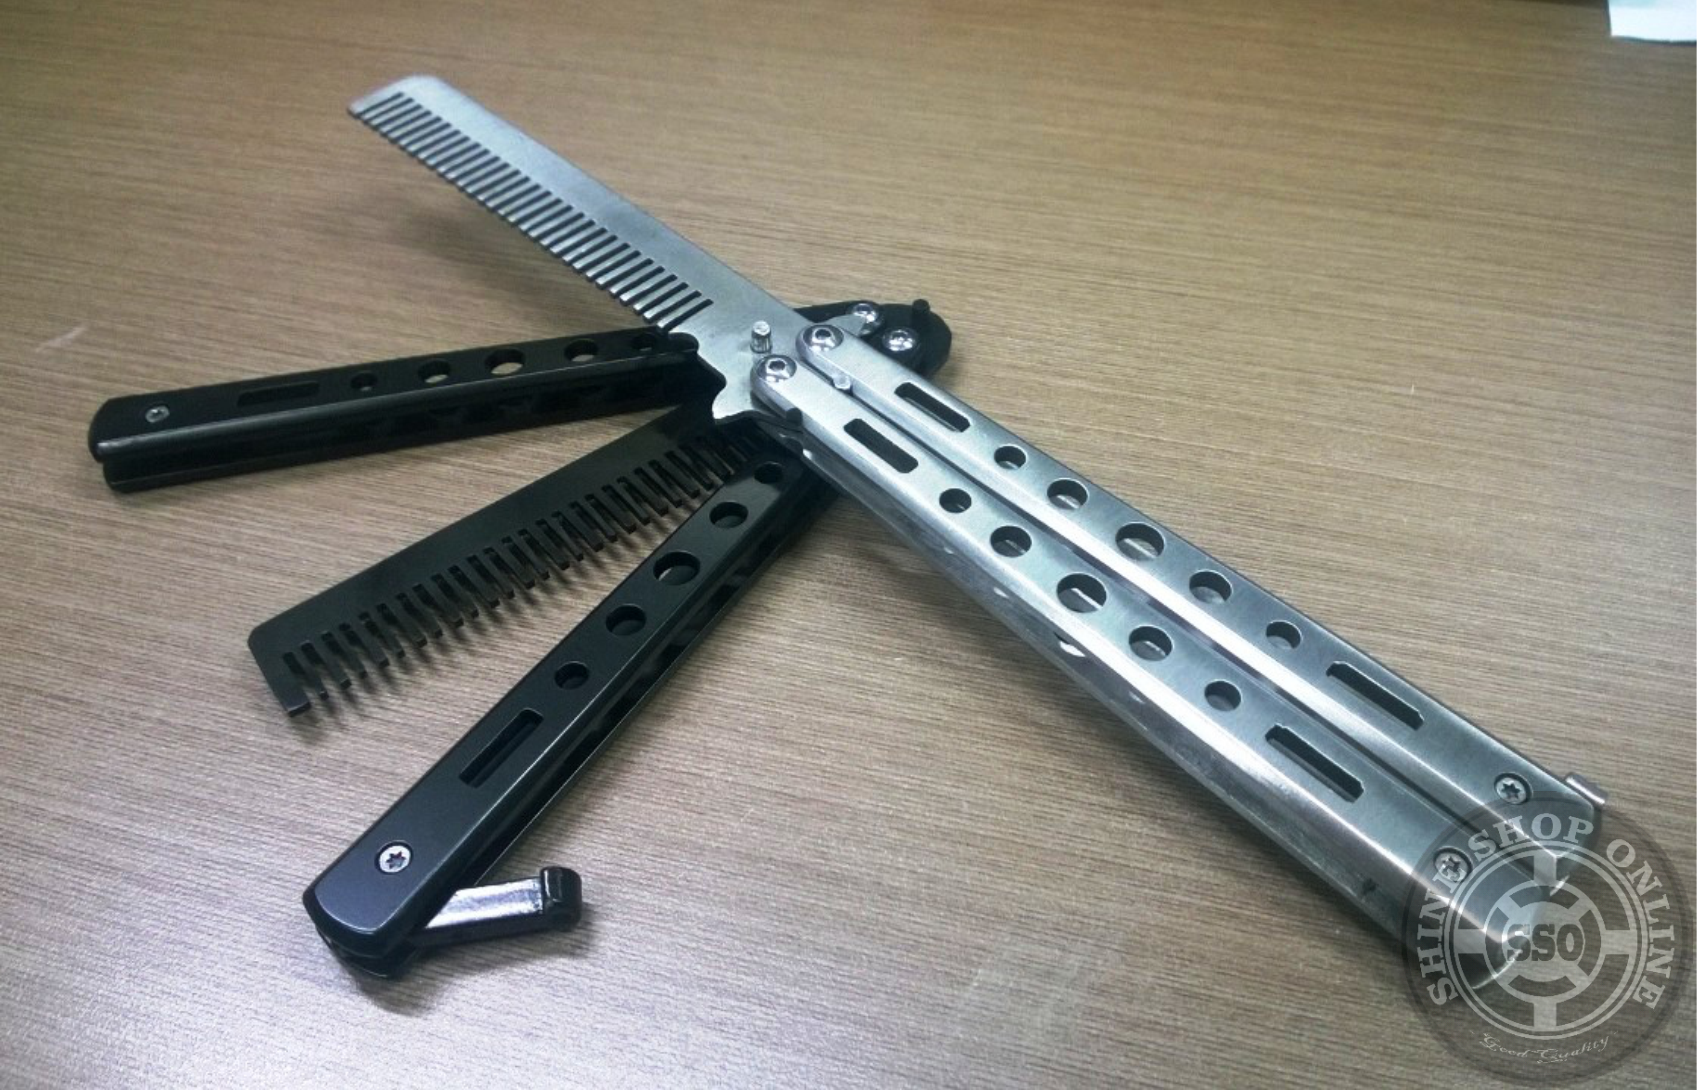 Benchmade Balisong Butterfly Comb Silver Cek Harga Terkini Dan Switch Blade Sisir Pomade Knives Knife Center Source Jual Black And